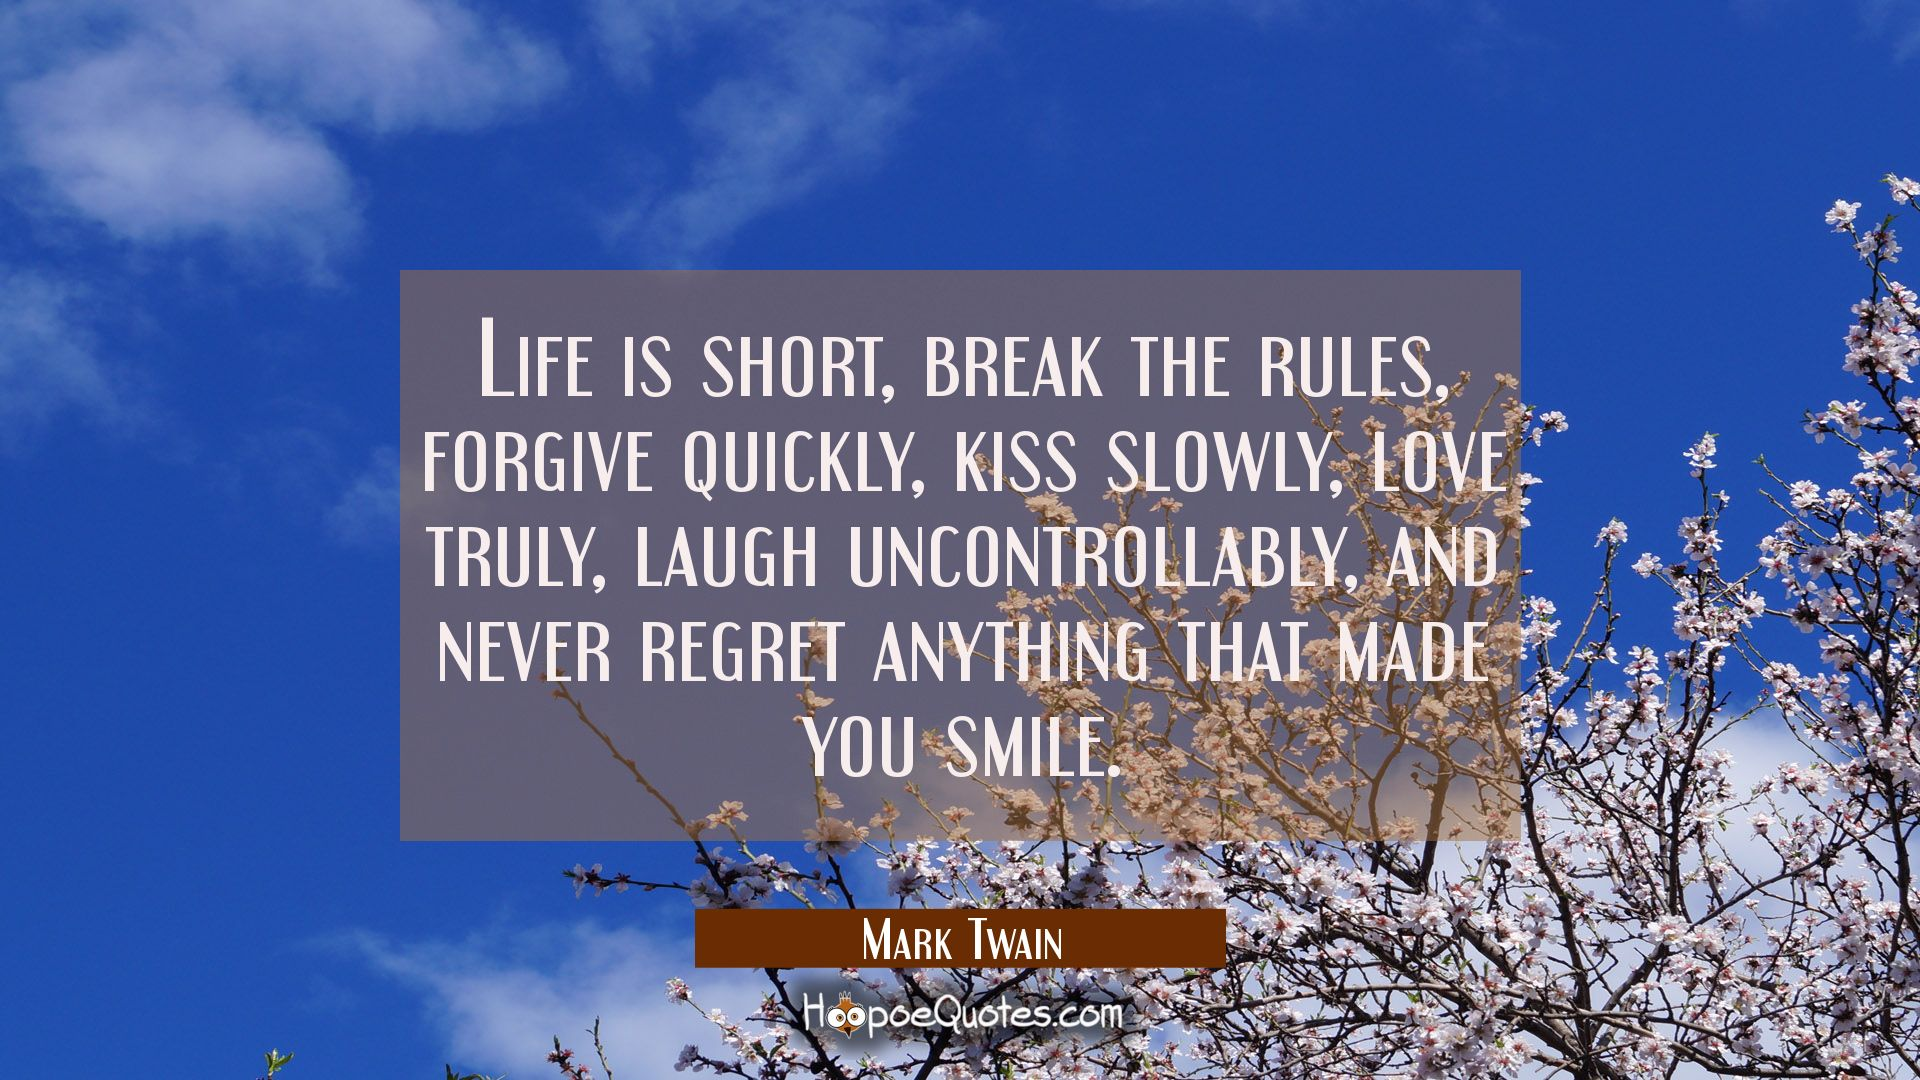 Mark Twain Quotes About Life Mark Twain Quotes  Beautiful Picture Quotes  Hoopoequotes